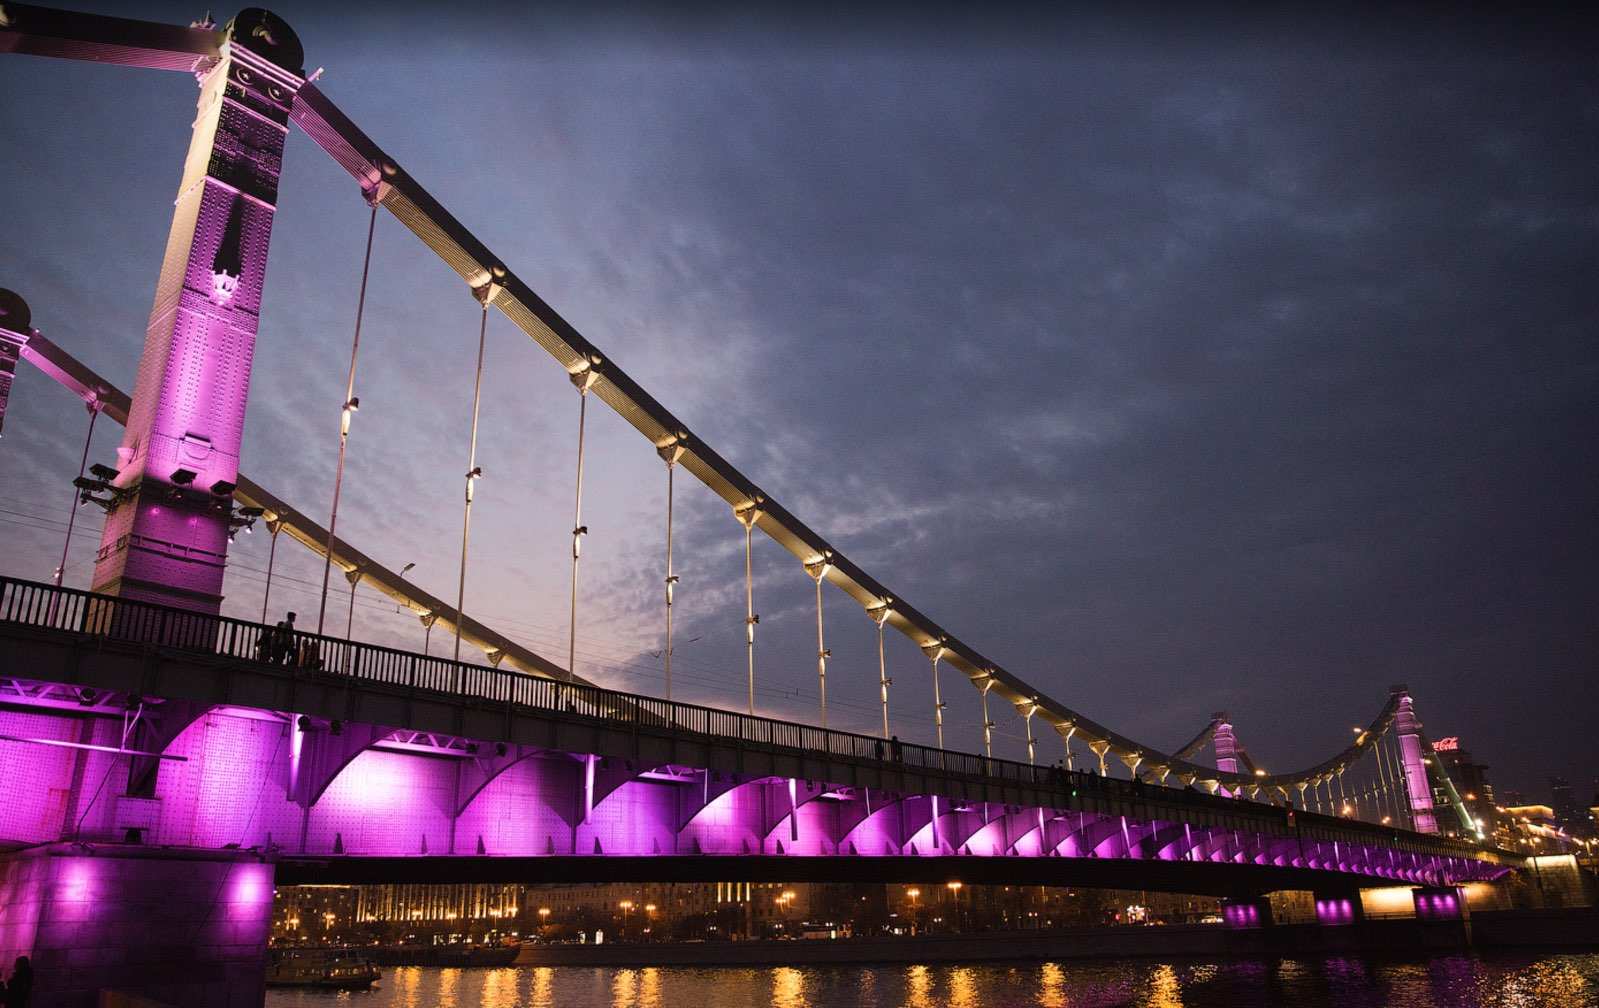 Krymsky Bridge at night